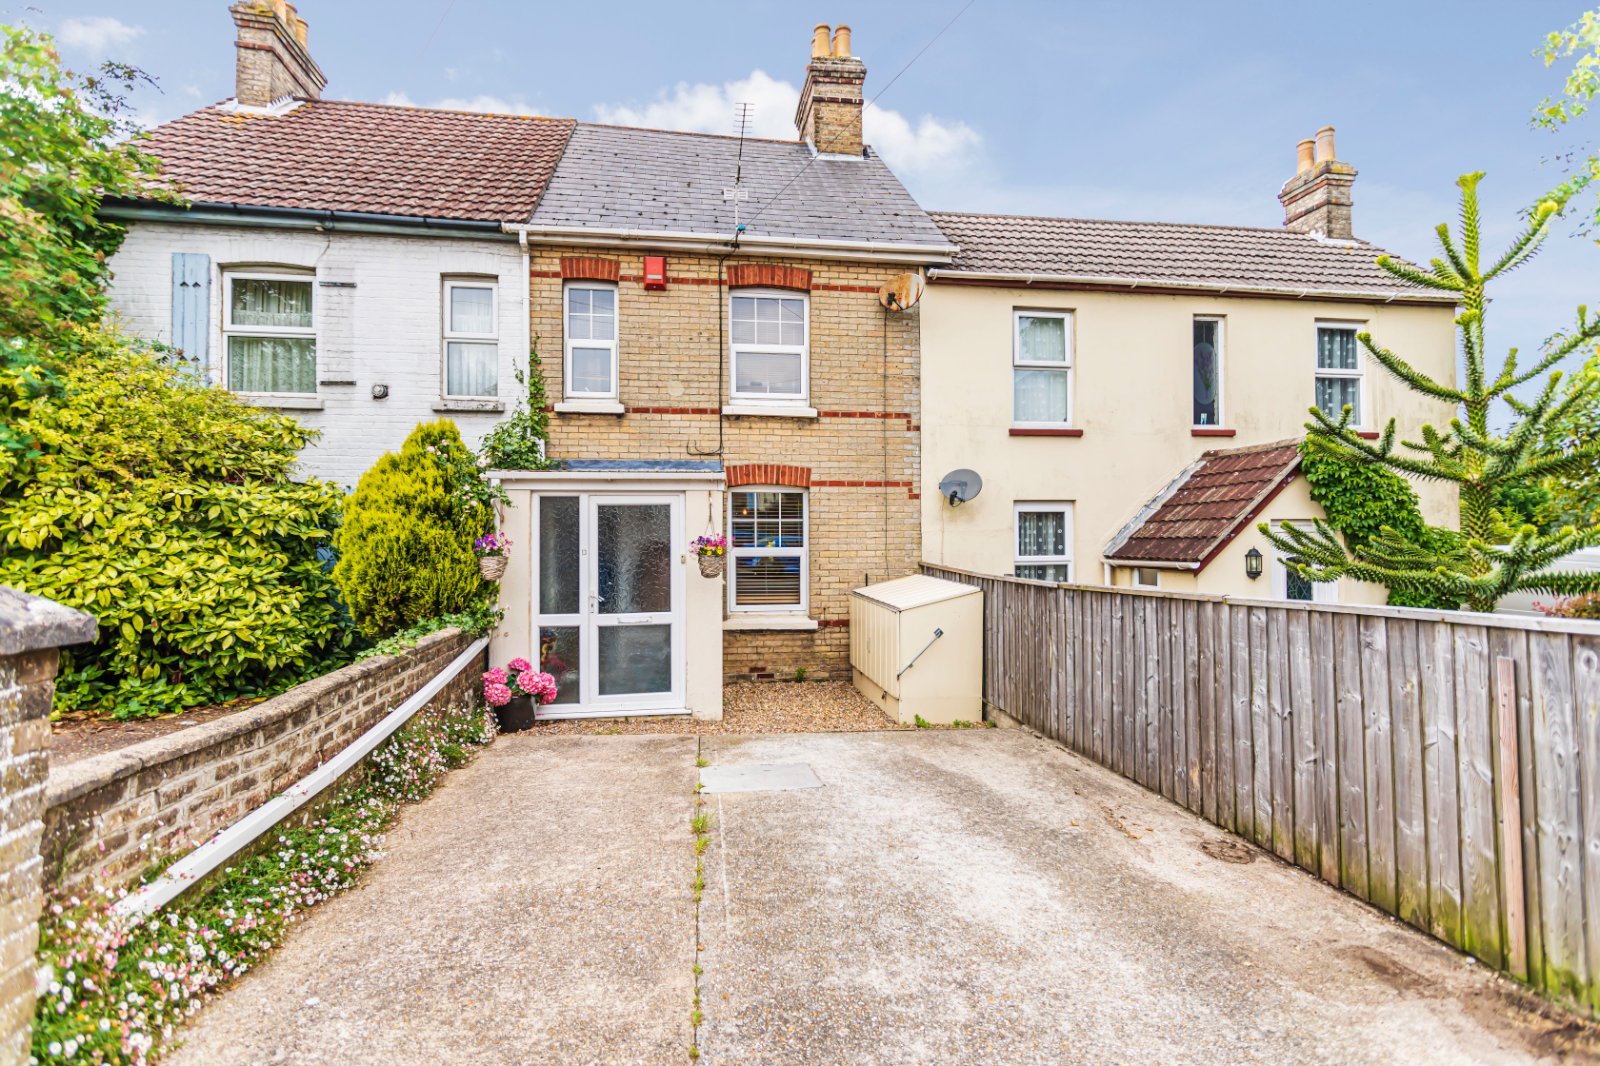 3 bed house for sale in Parkstone - Property Image 1